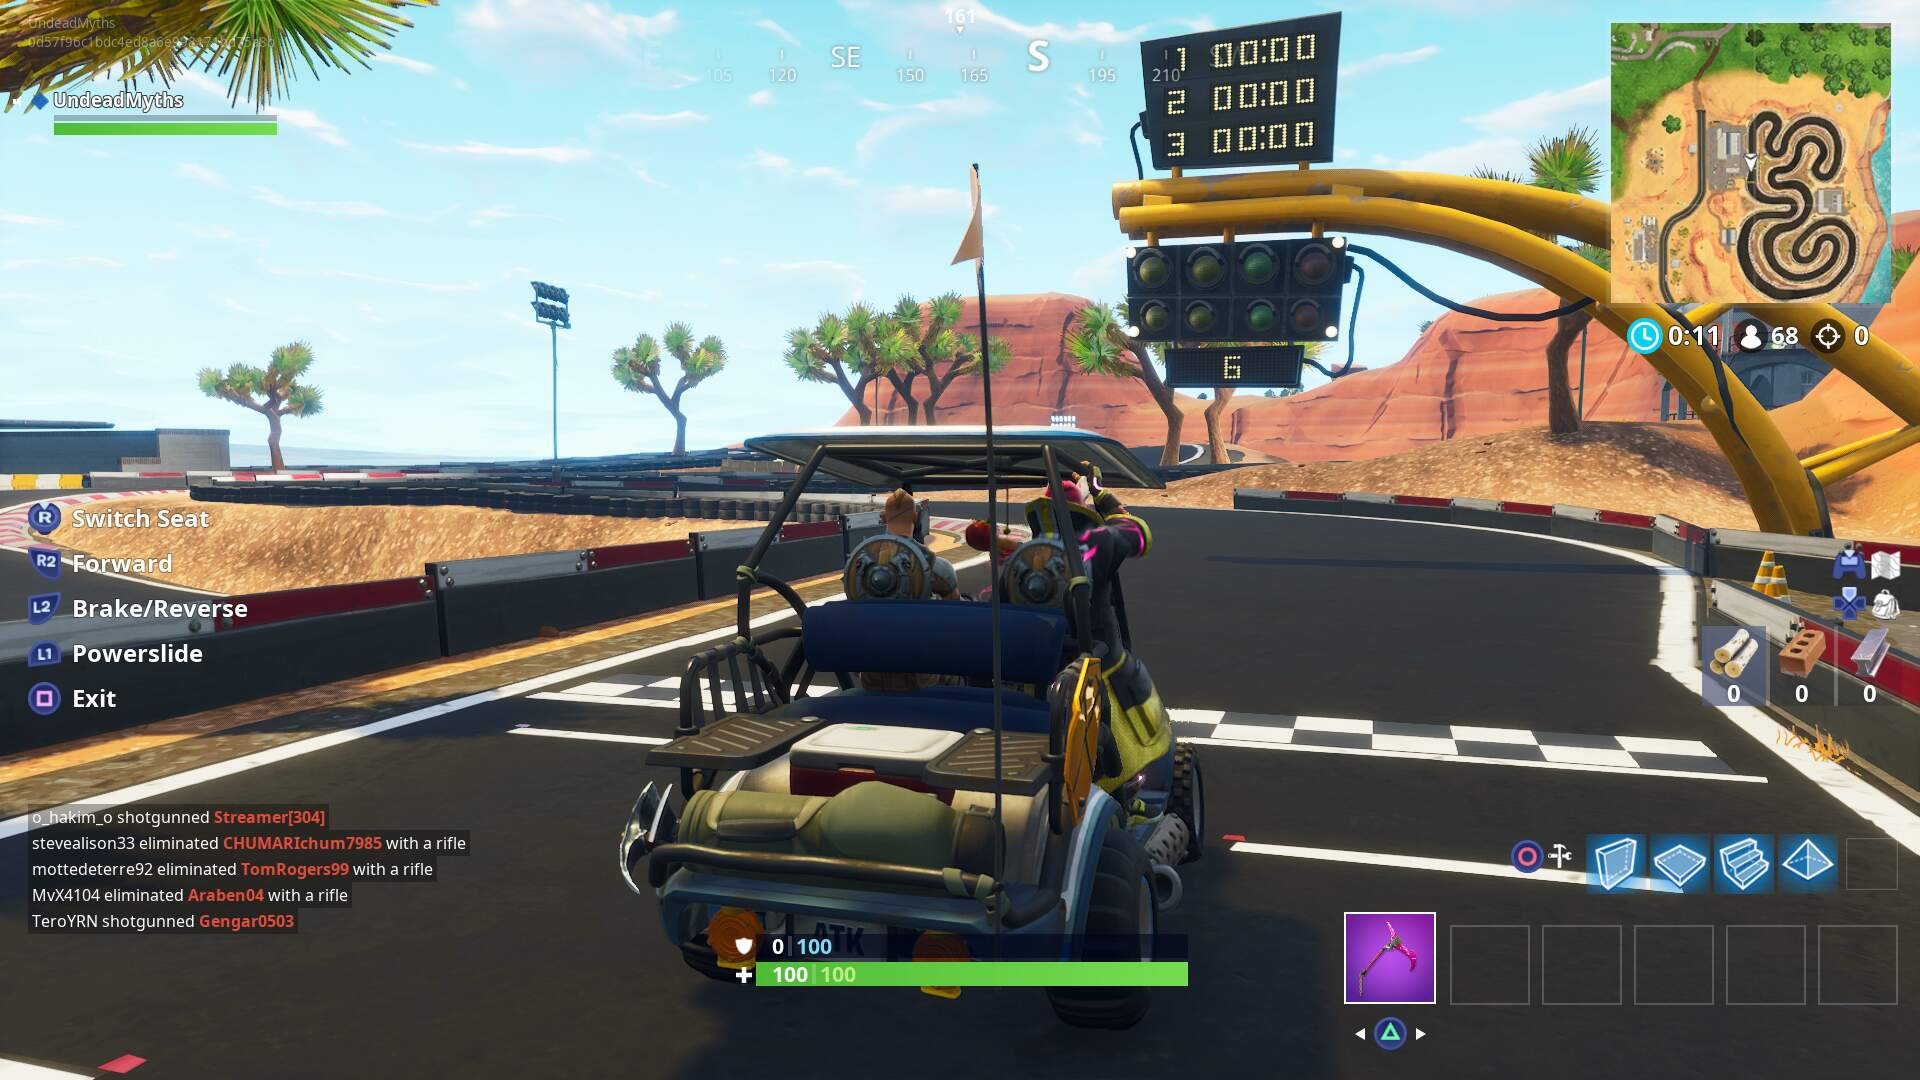 Fortnite Timed Trials Locations - Week 3 Challenge Guide